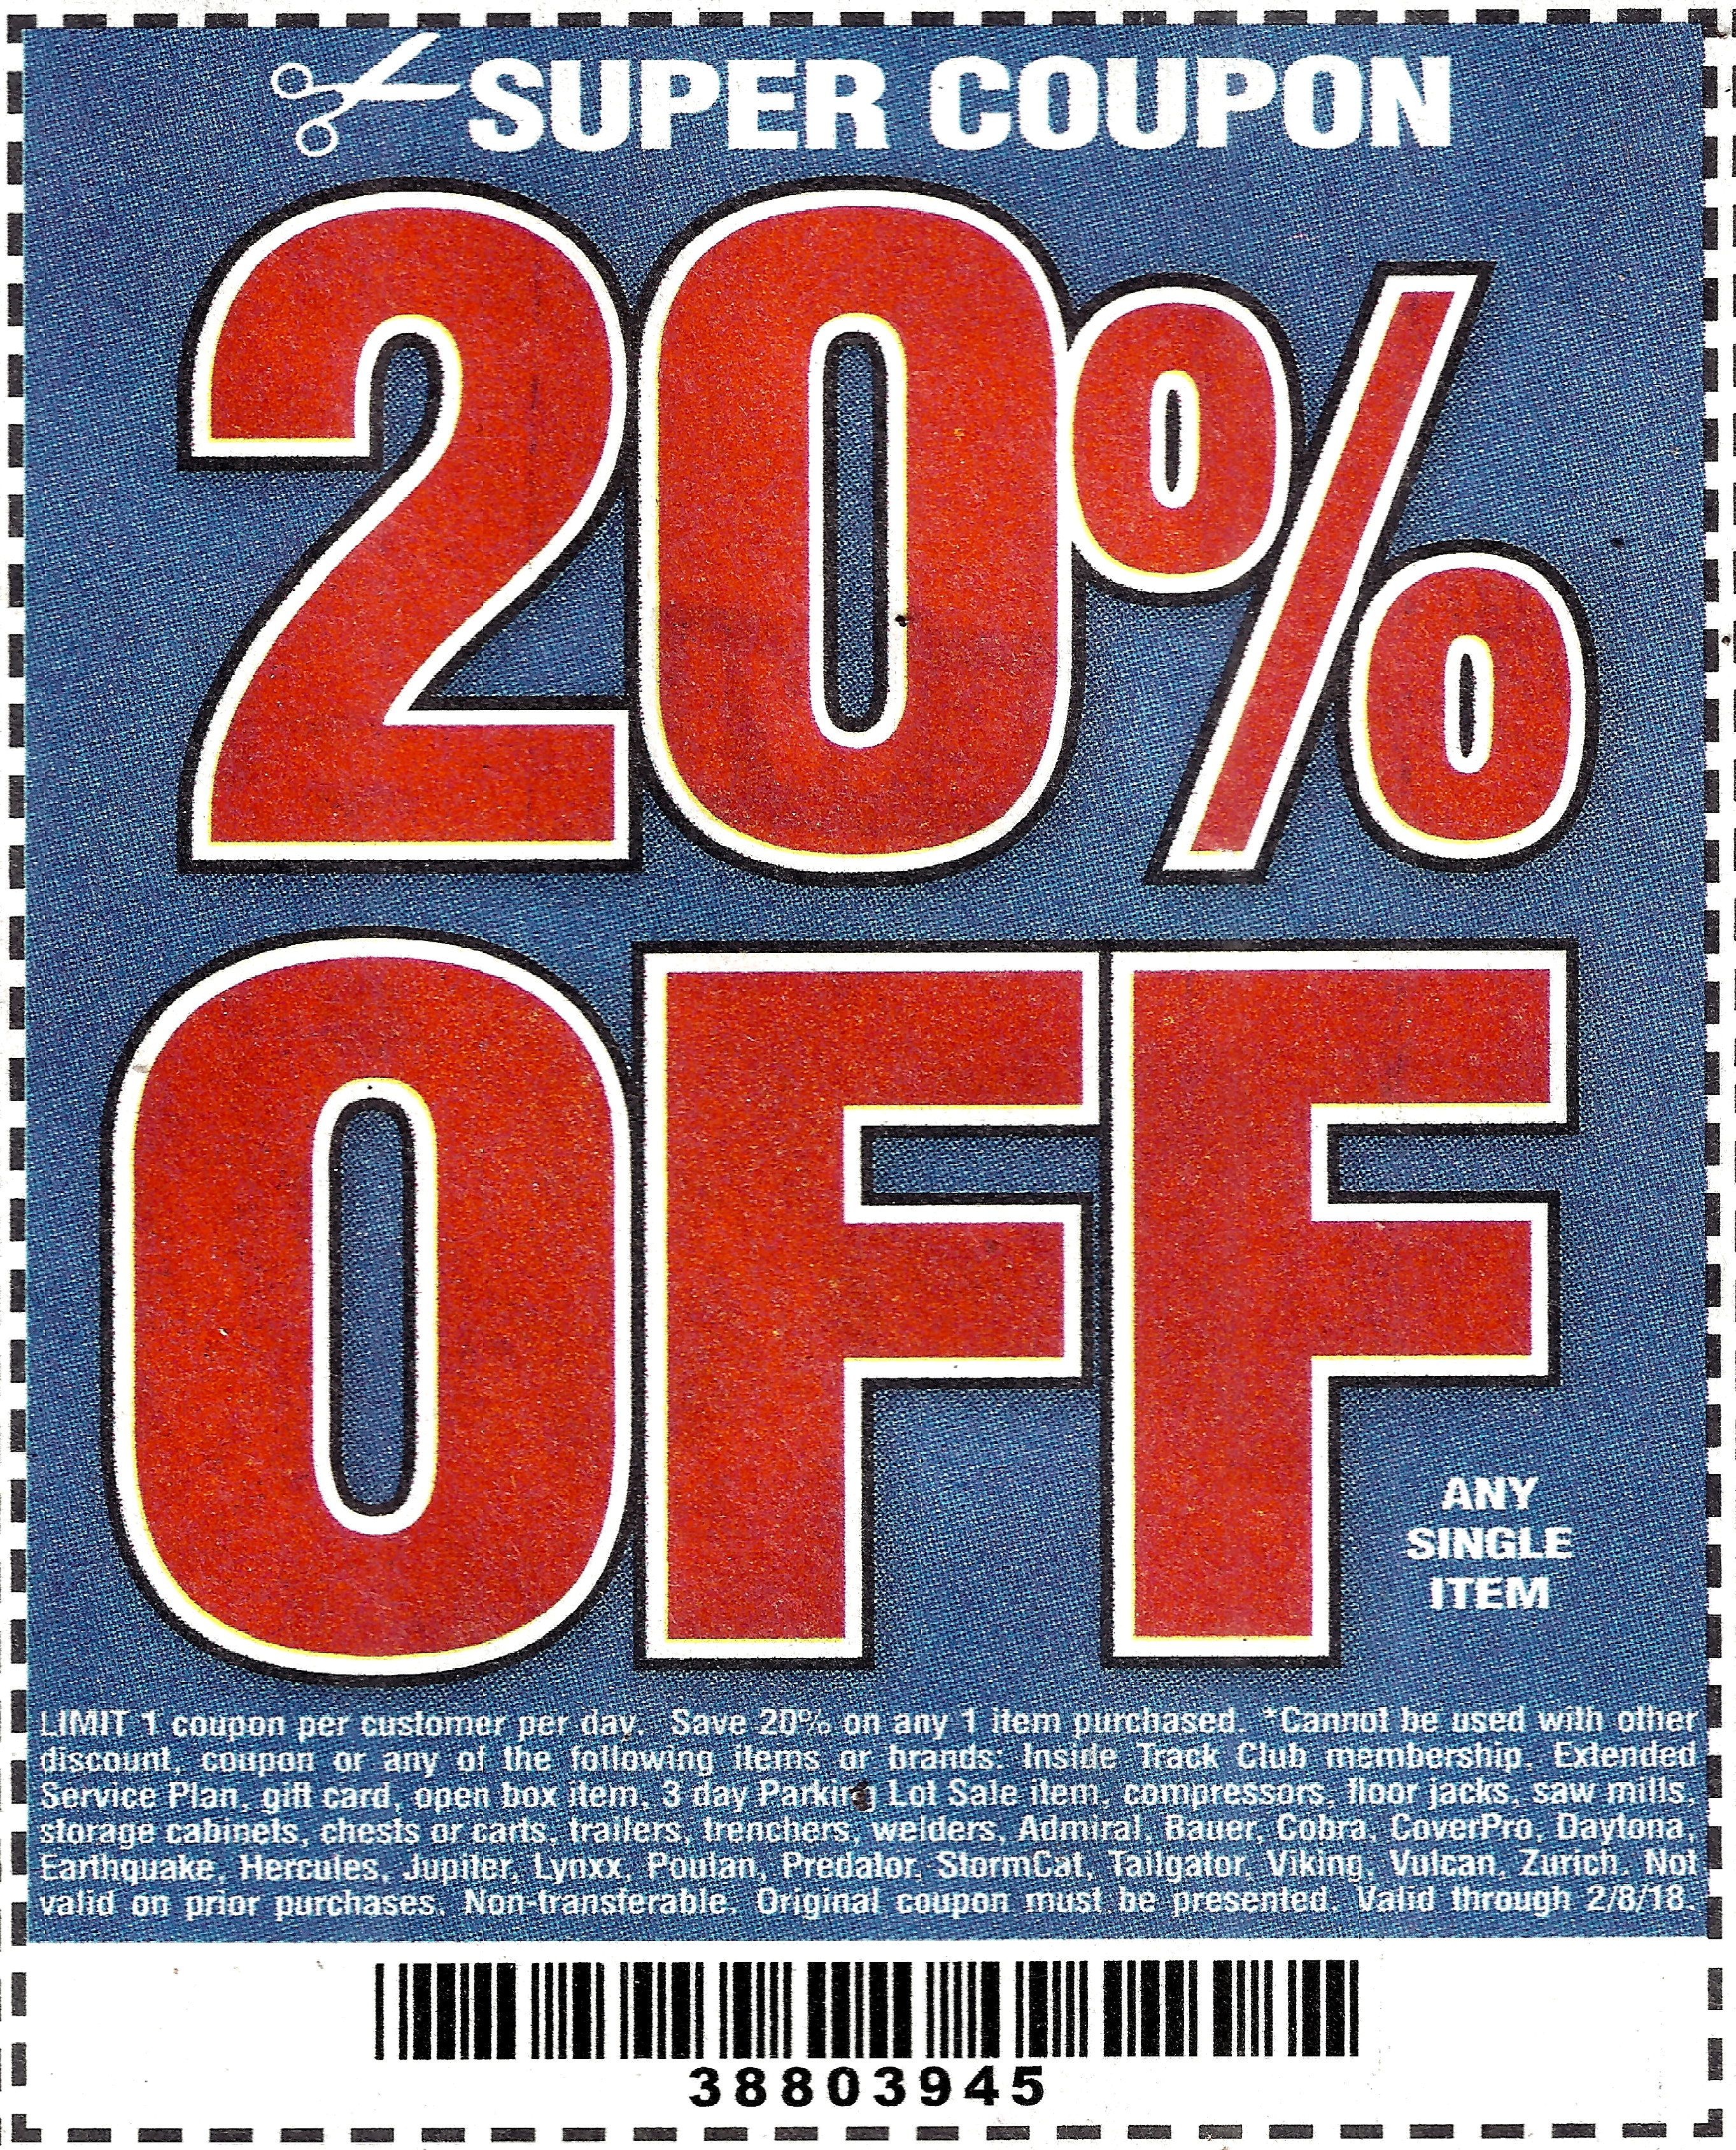 Harbor freight tools coupon database free coupons 25 percent harbor freight 20 percent off coupon harbor freight 20 percent off coupon sciox Image collections